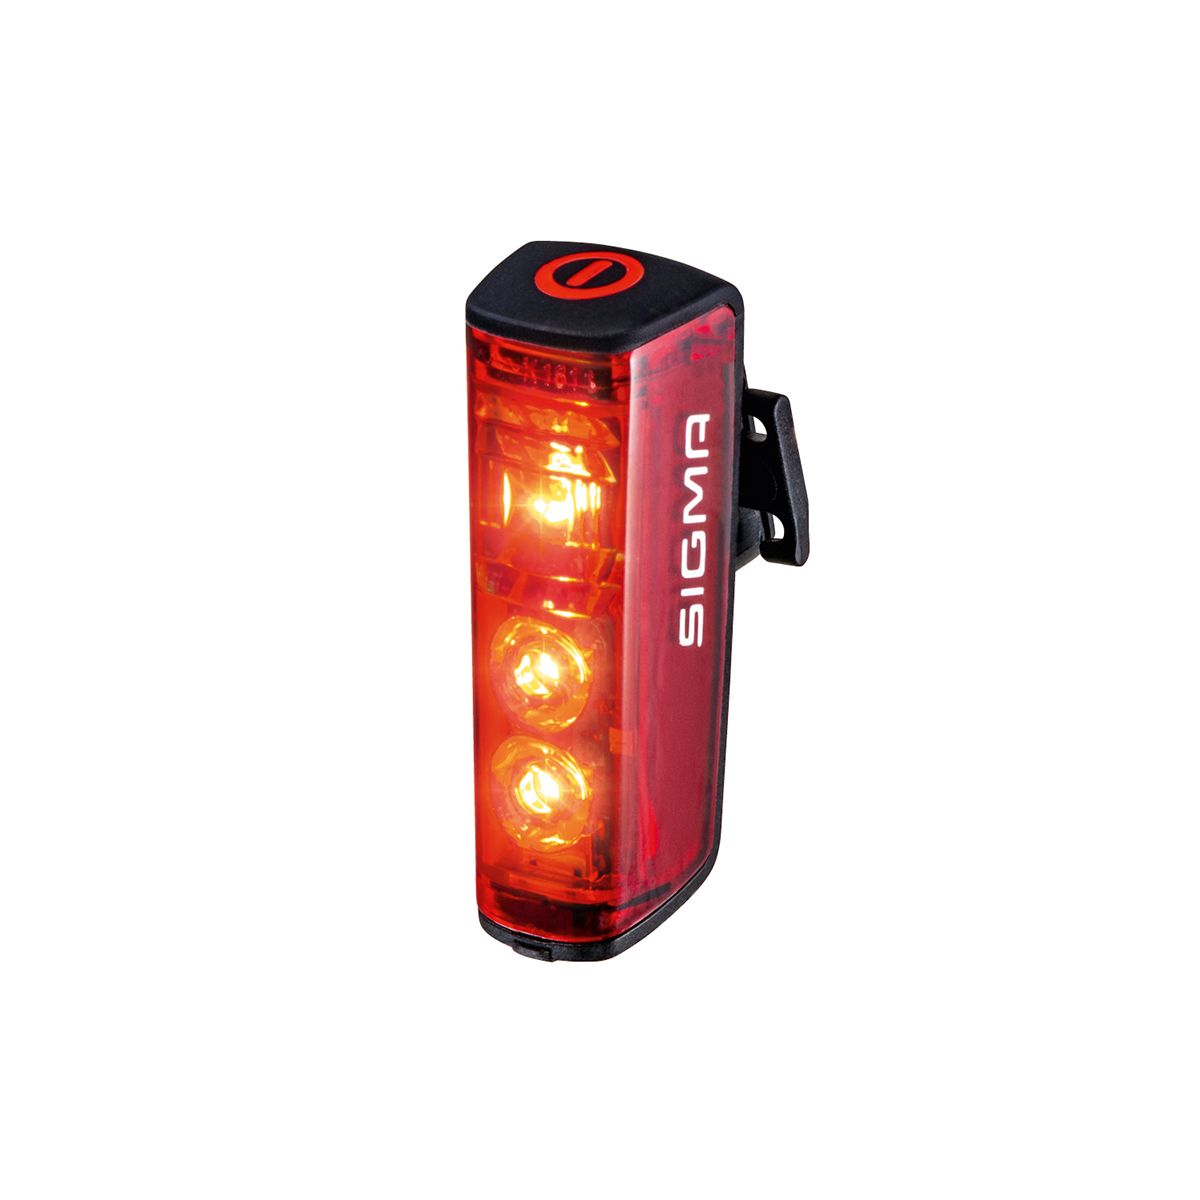 BLAZE USB battery-powered rear light with brake light